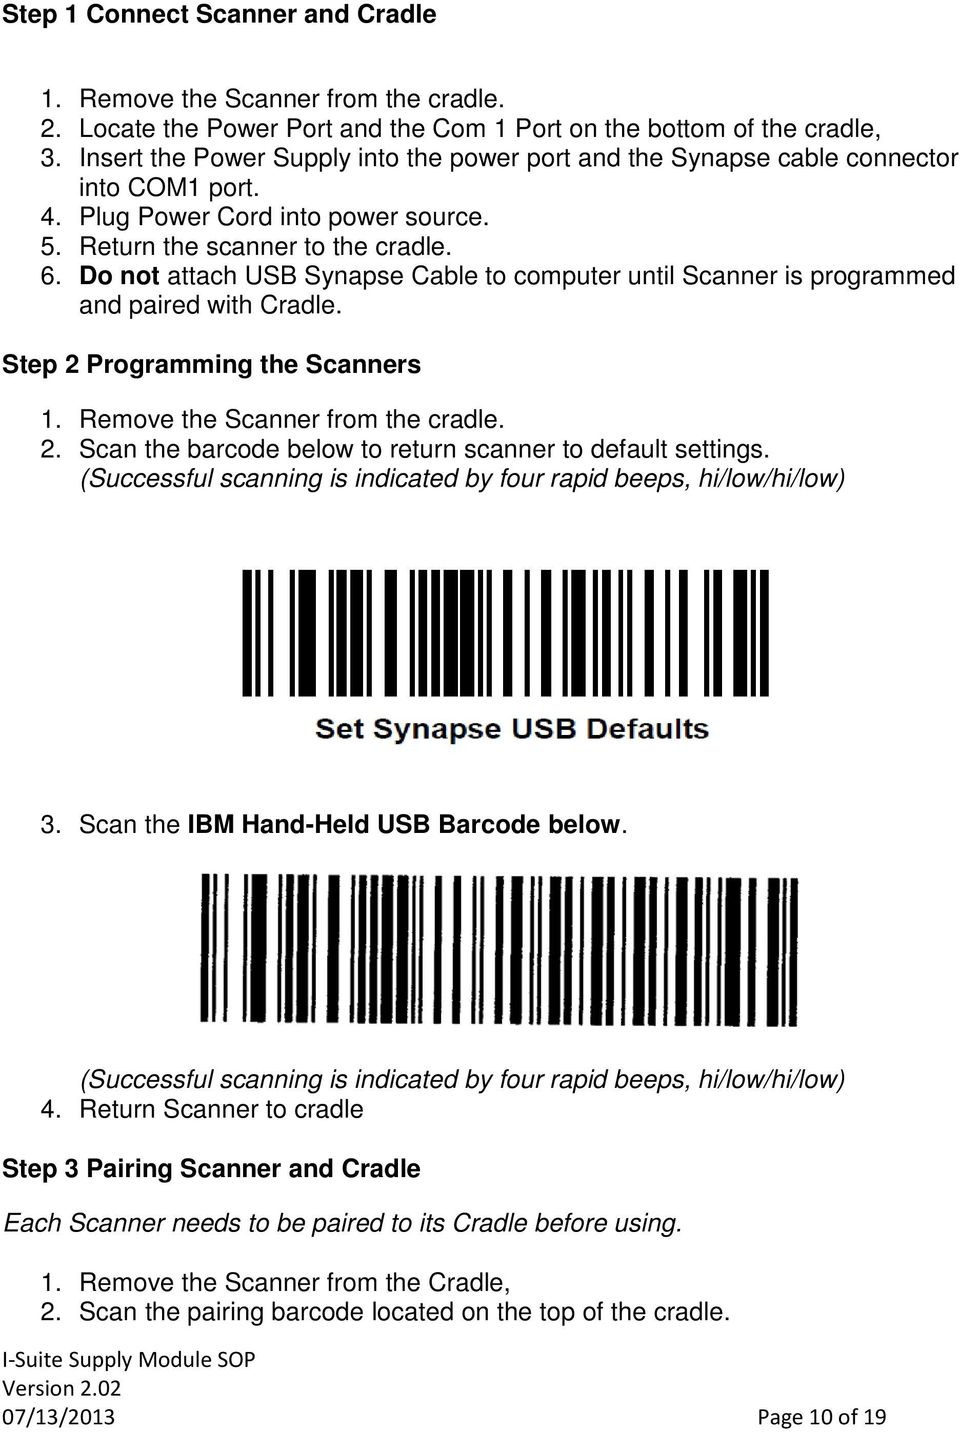 Do not attach USB Synapse Cable to computer until Scanner is programmed and paired with Cradle. Step 2 Programming the Scanners 1. Remove the Scanner from the cradle. 2. Scan the barcode below to return scanner to default settings.